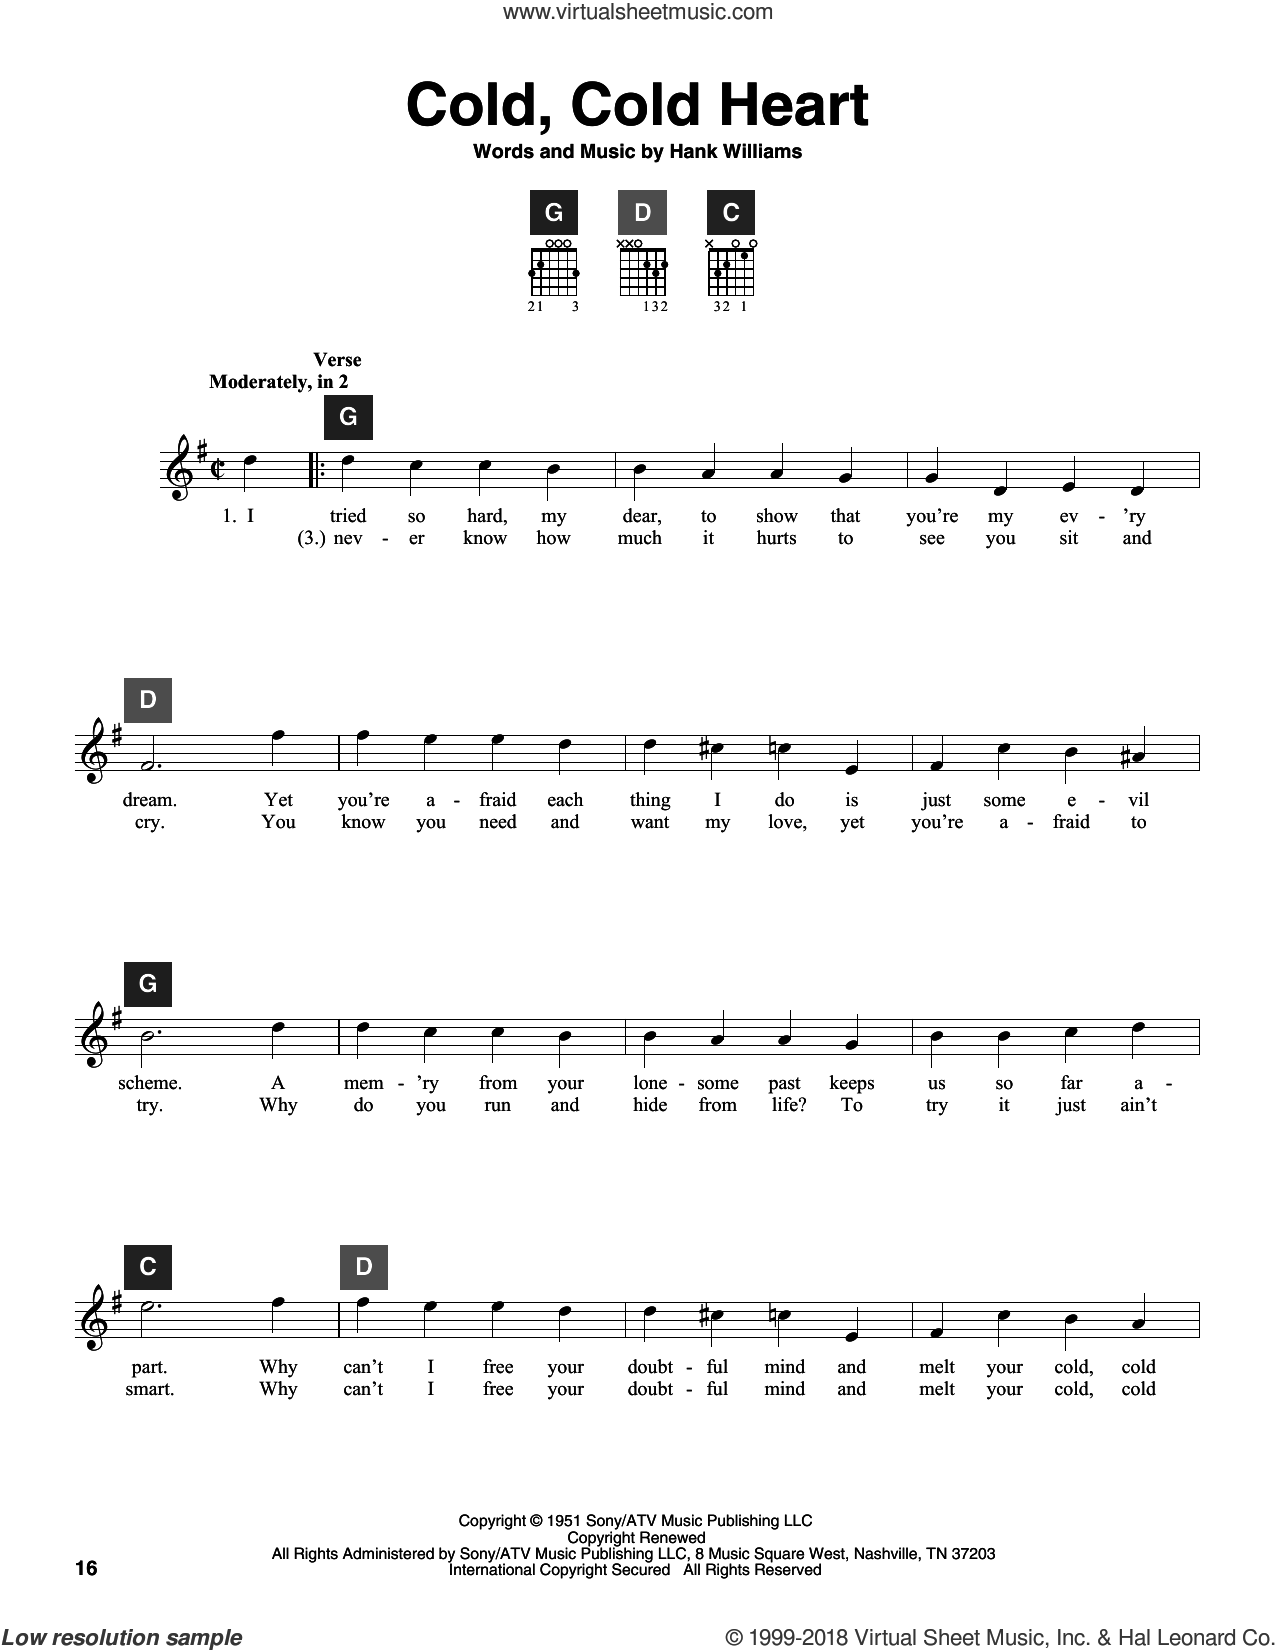 Cold, Cold Heart sheet music for guitar solo (ChordBuddy system) by Hank Williams, Tony Bennett and Travis Perry, intermediate guitar (ChordBuddy system)